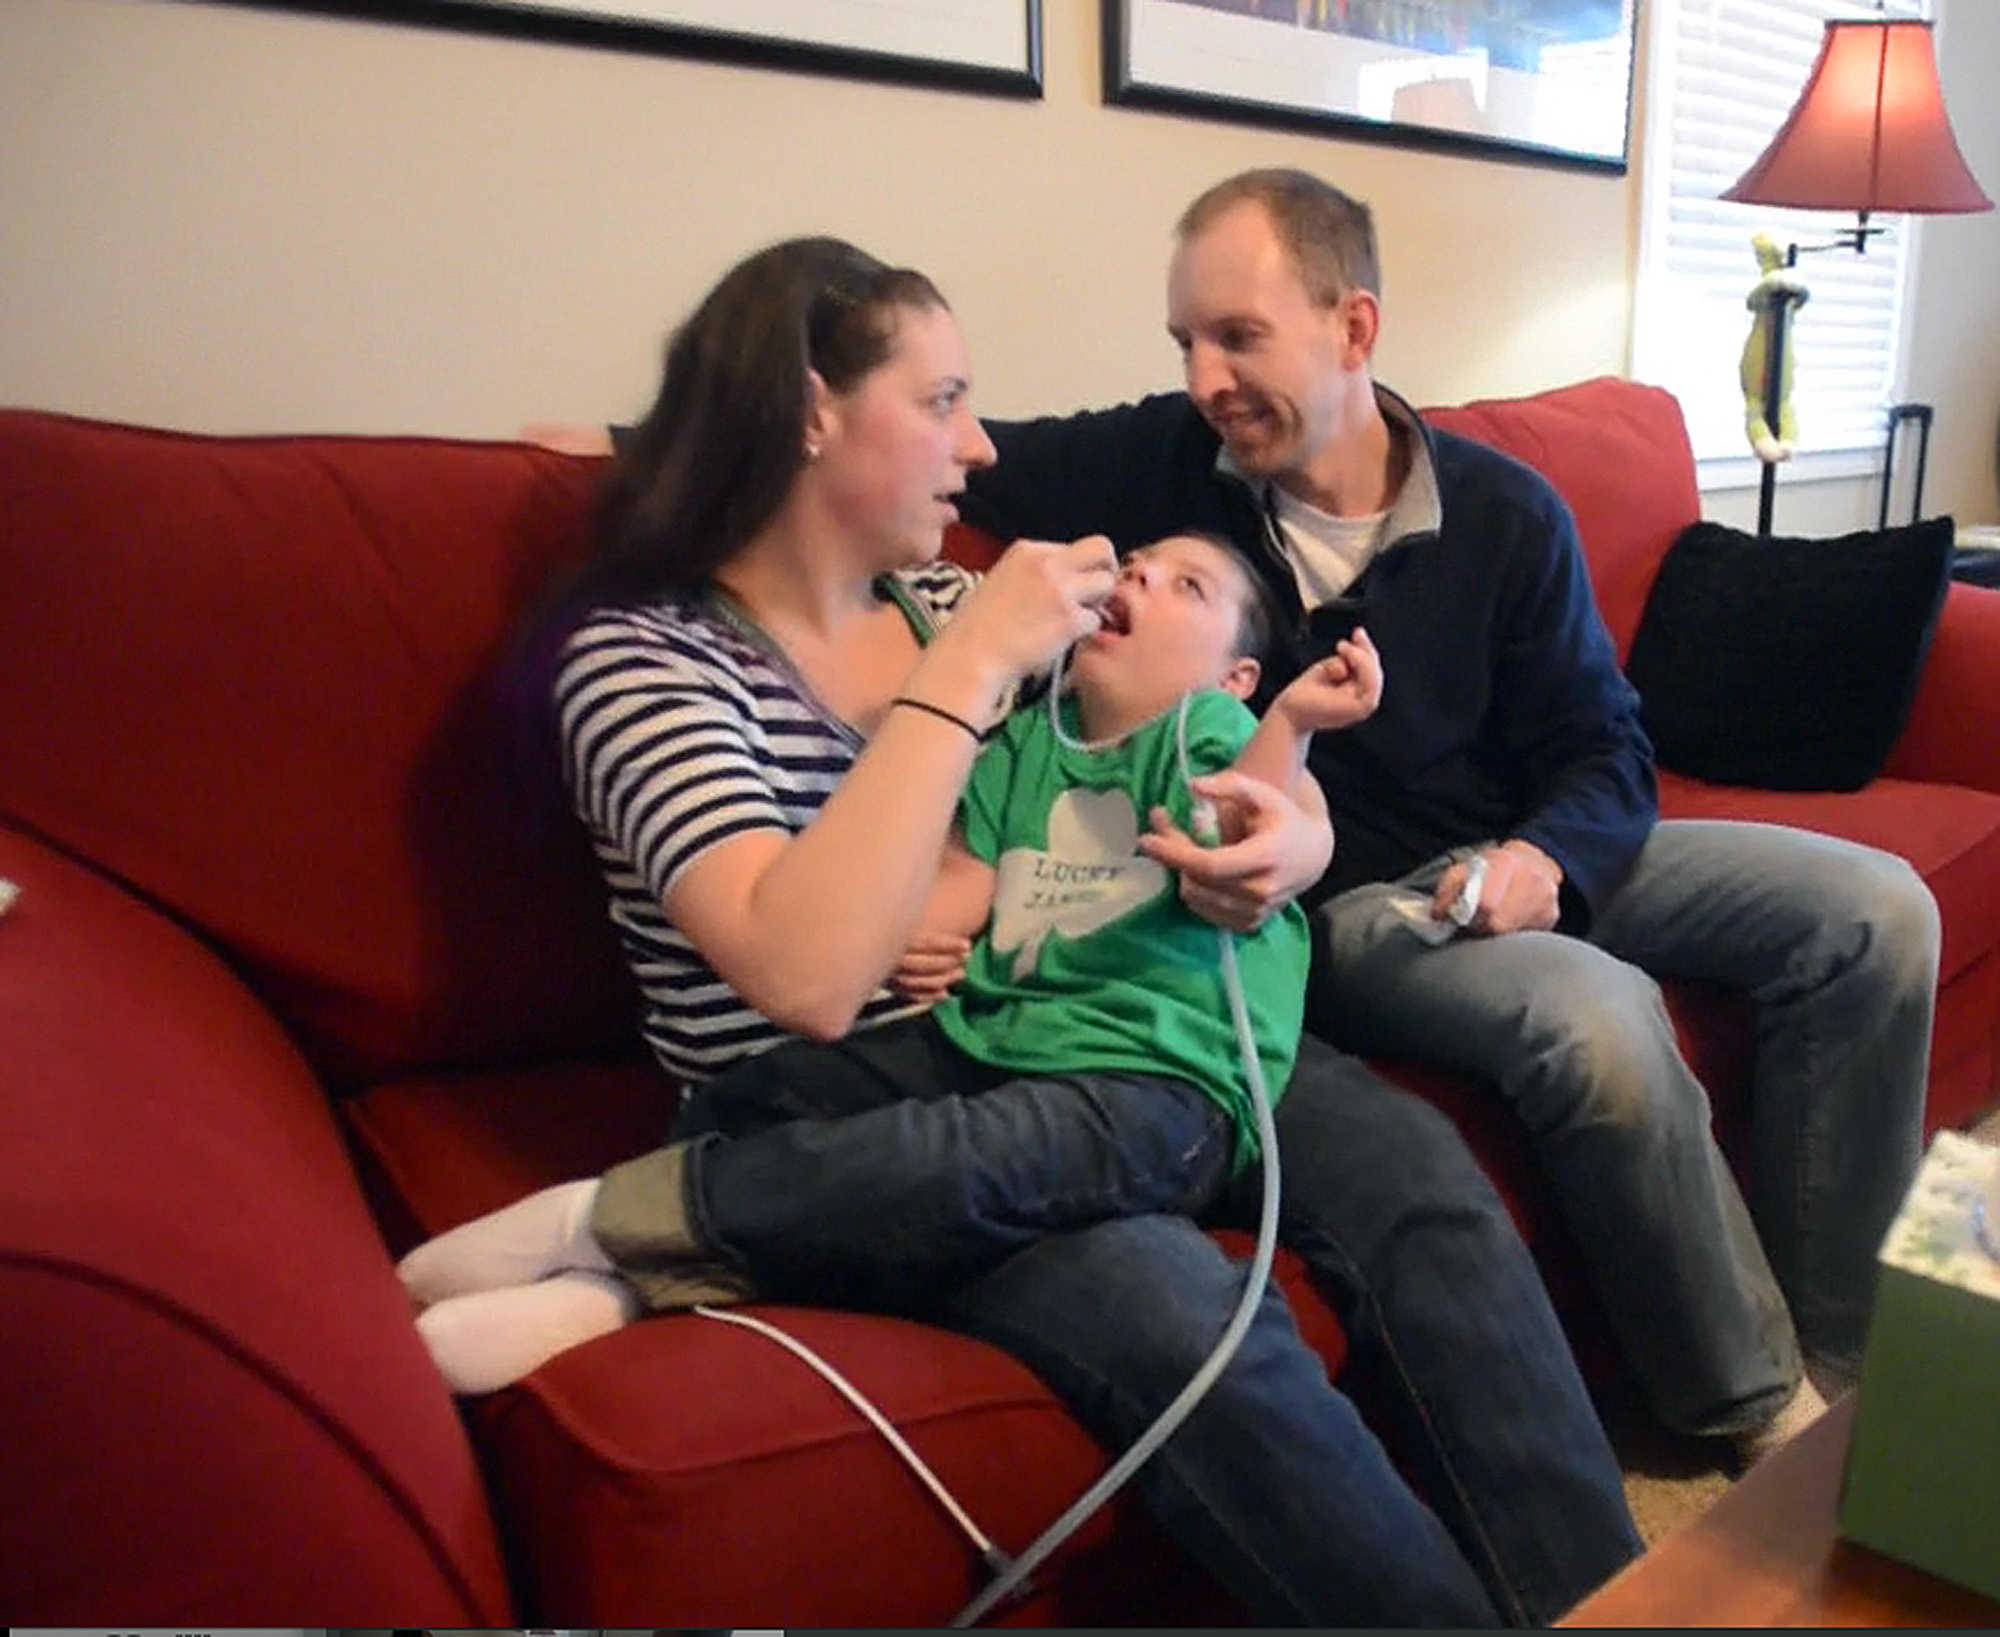 James Fulkerson can't swallow. So Stacy and Jeff Fulkerson use a plastic tube to suction fluids from the 4-year-old's throat and nose as frequently as 20 times an hour.